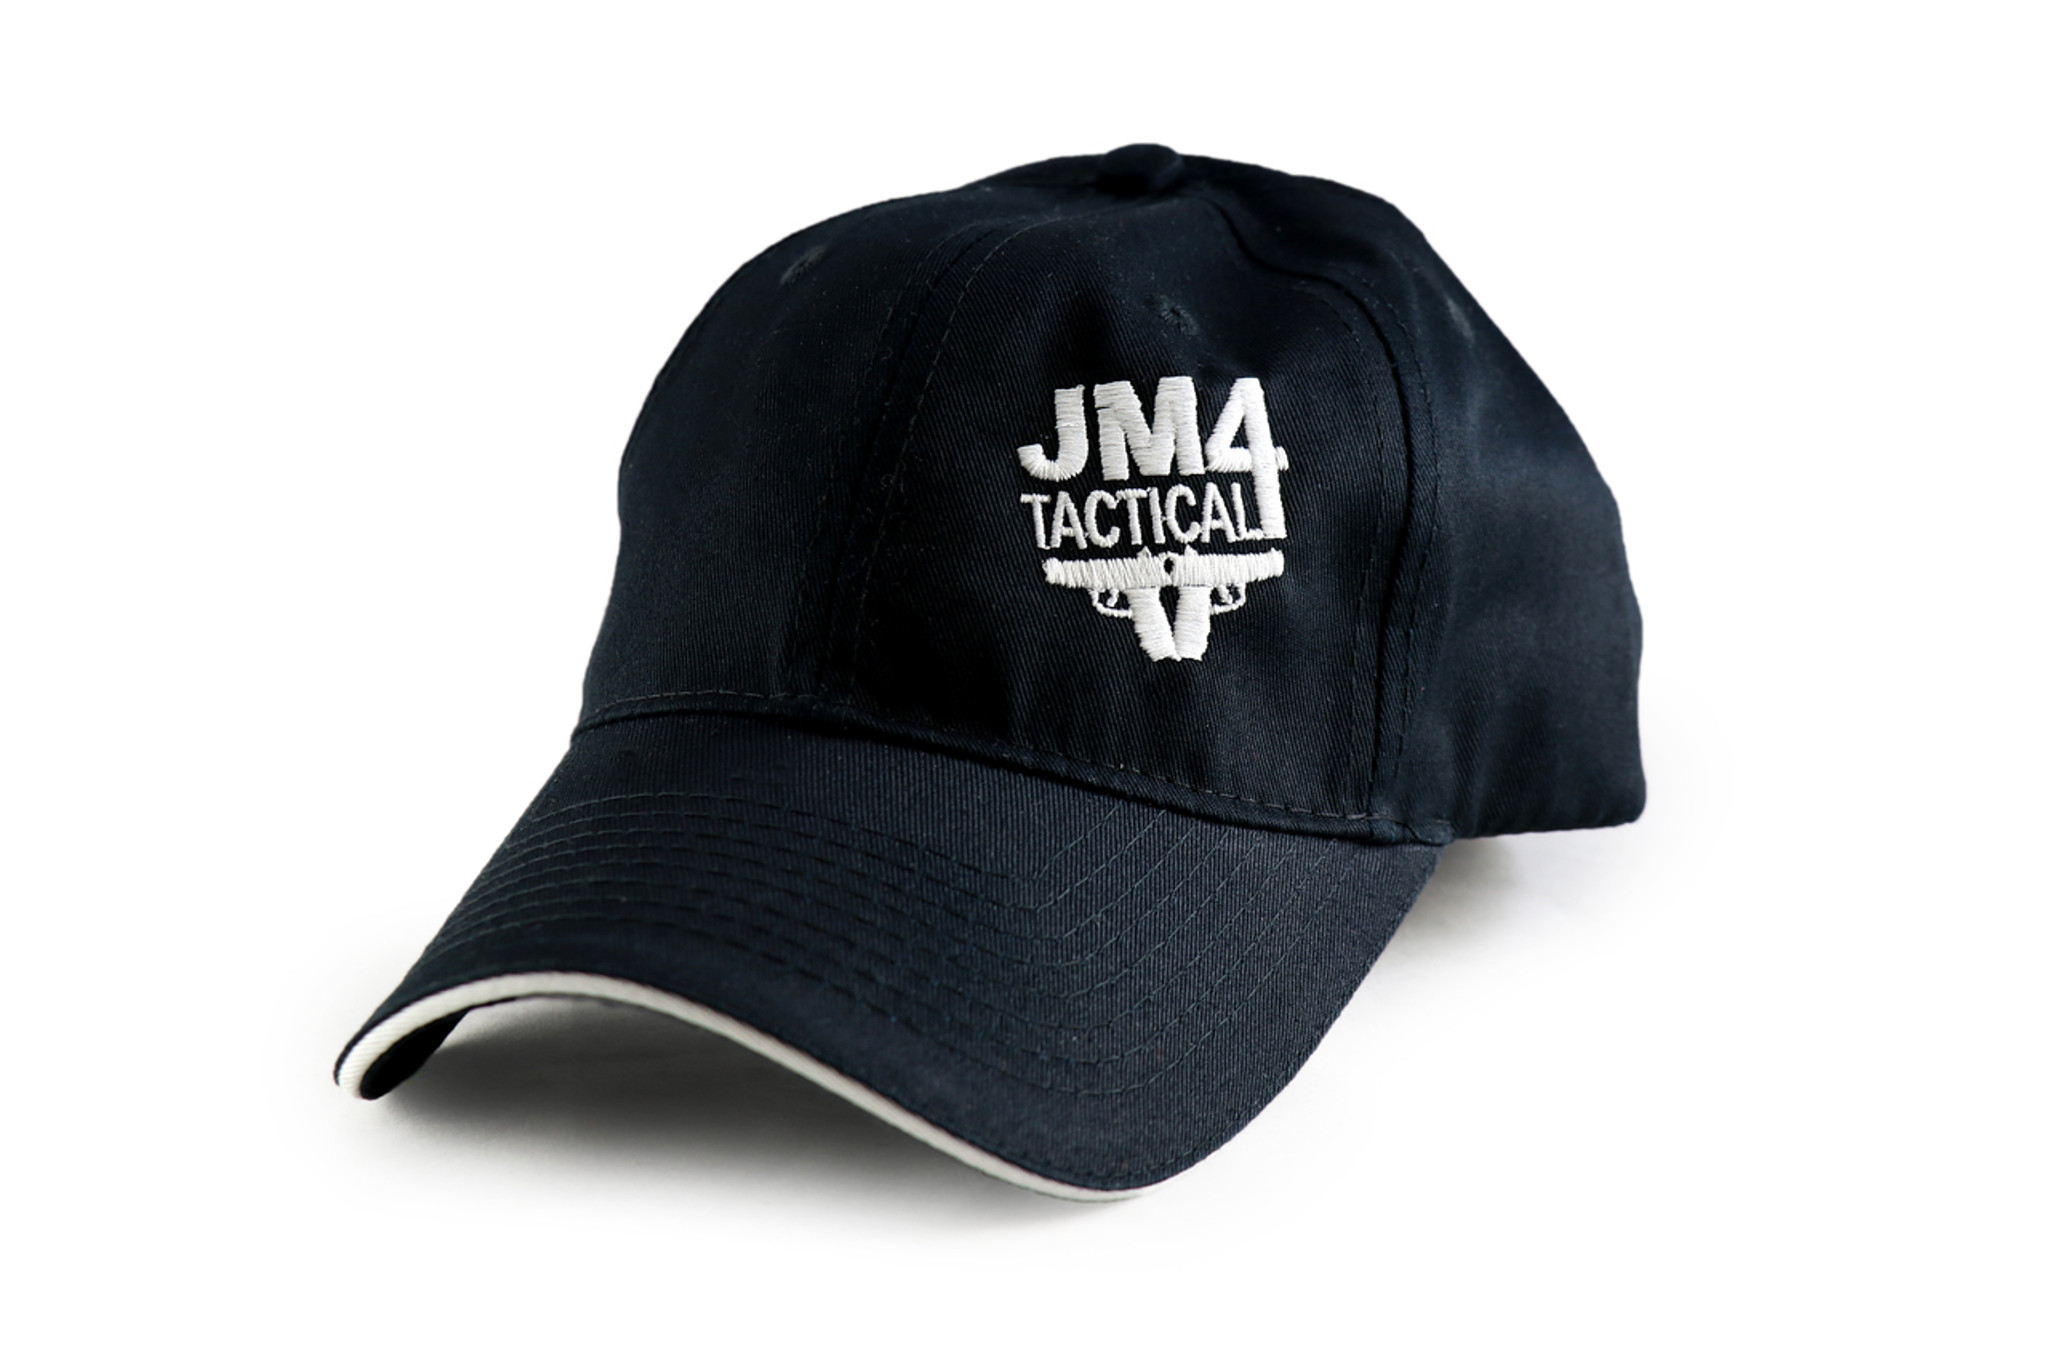 JM4 Tactical Low-Pro Cap - JM4 Tactical 4582b0e99c58